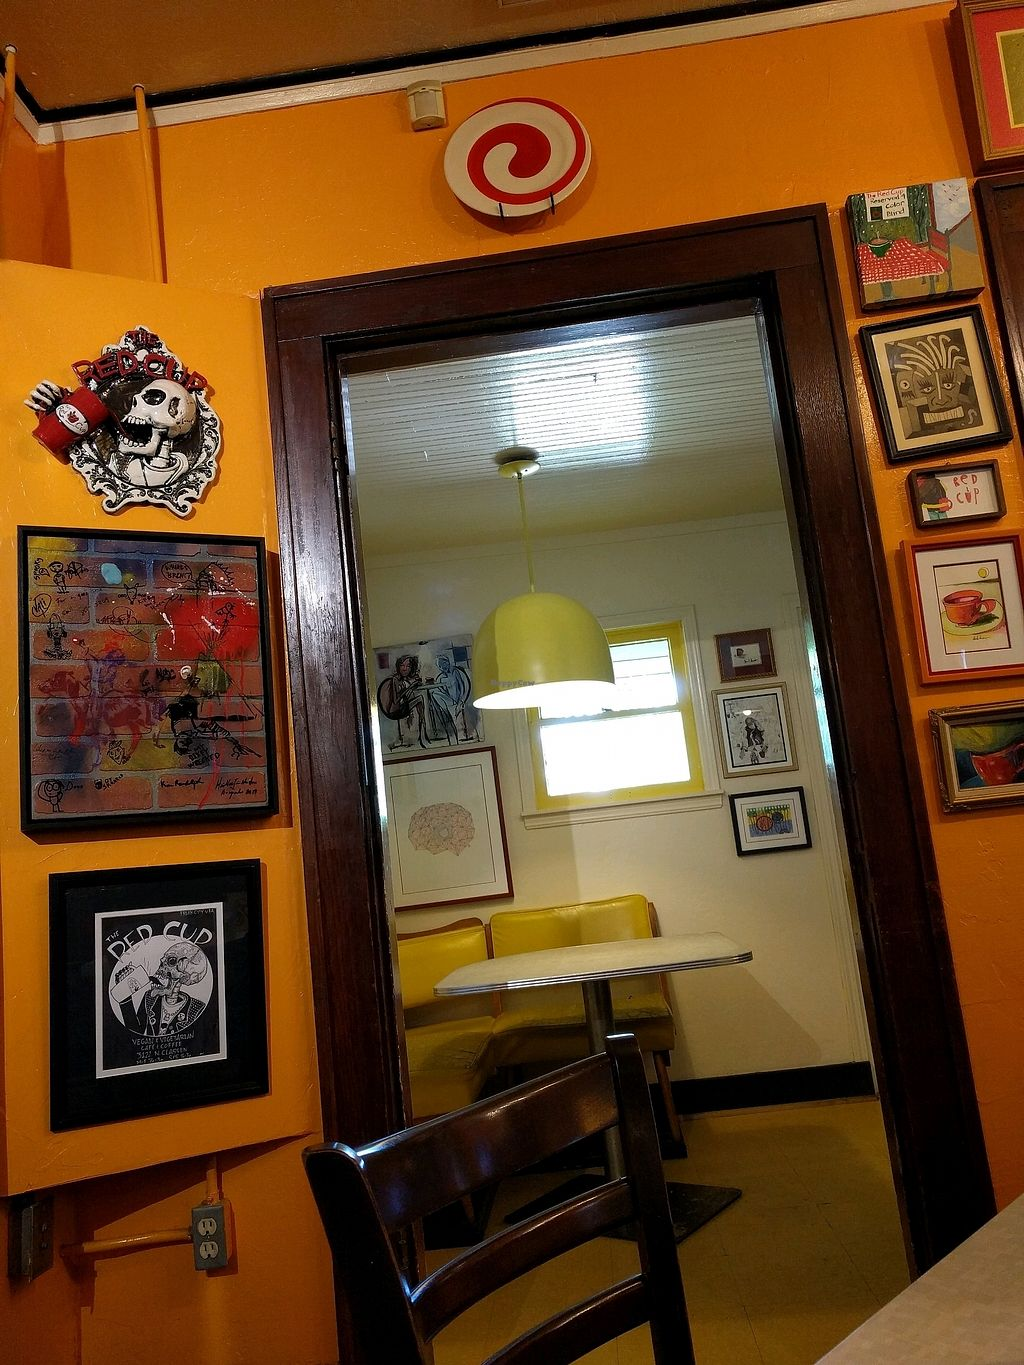 """Photo of Red Cup Coffee House  by <a href=""""/members/profile/ept"""">ept</a> <br/>red cup interior <br/> October 2, 2017  - <a href='/contact/abuse/image/11038/310895'>Report</a>"""